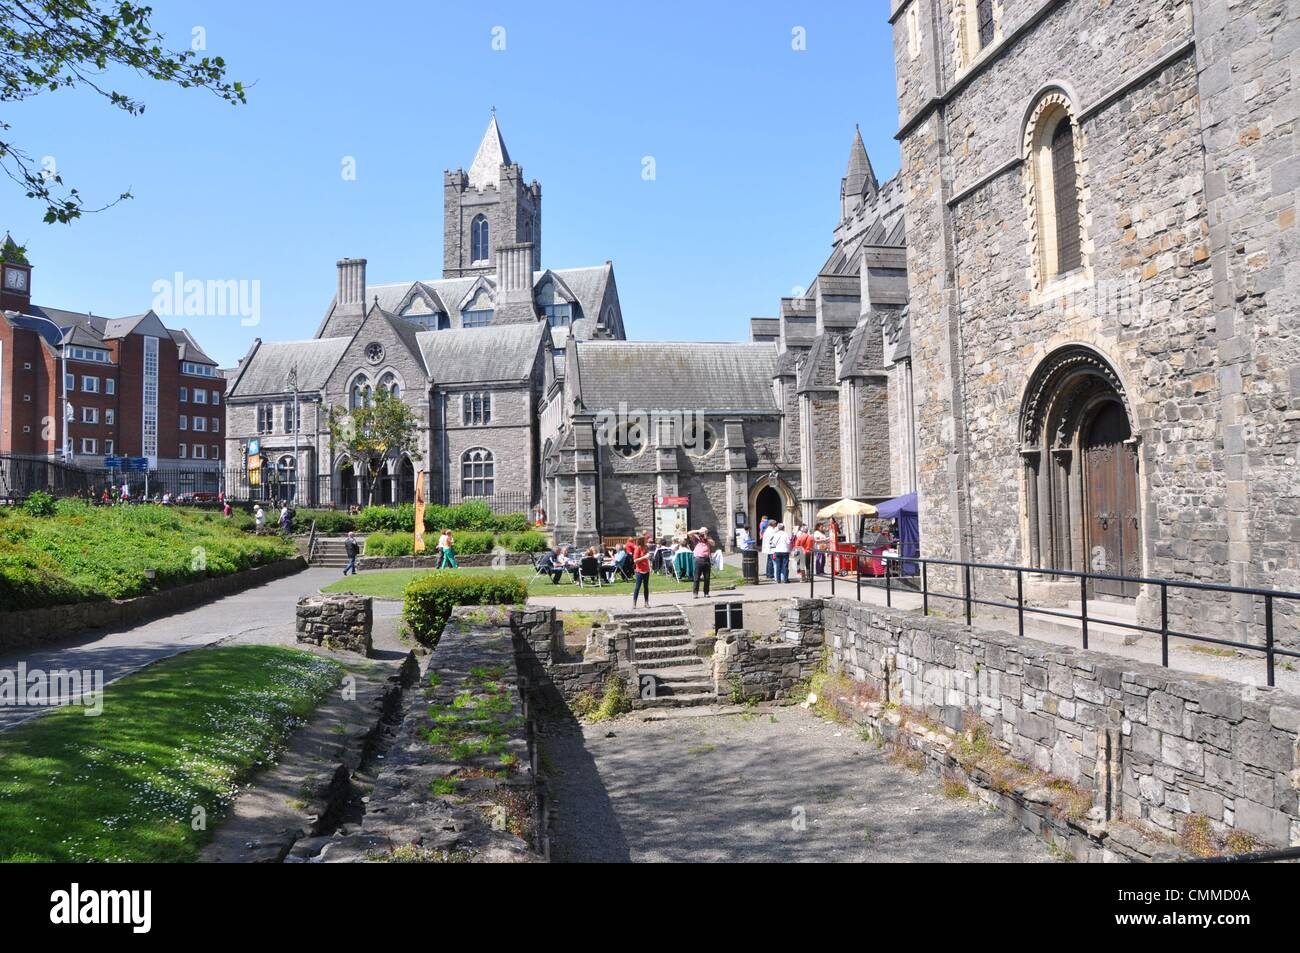 Christ Church Cathedral - also named The Cathedral of the Holy Trinity - is one of the oldest buildings in the city - Stock Image